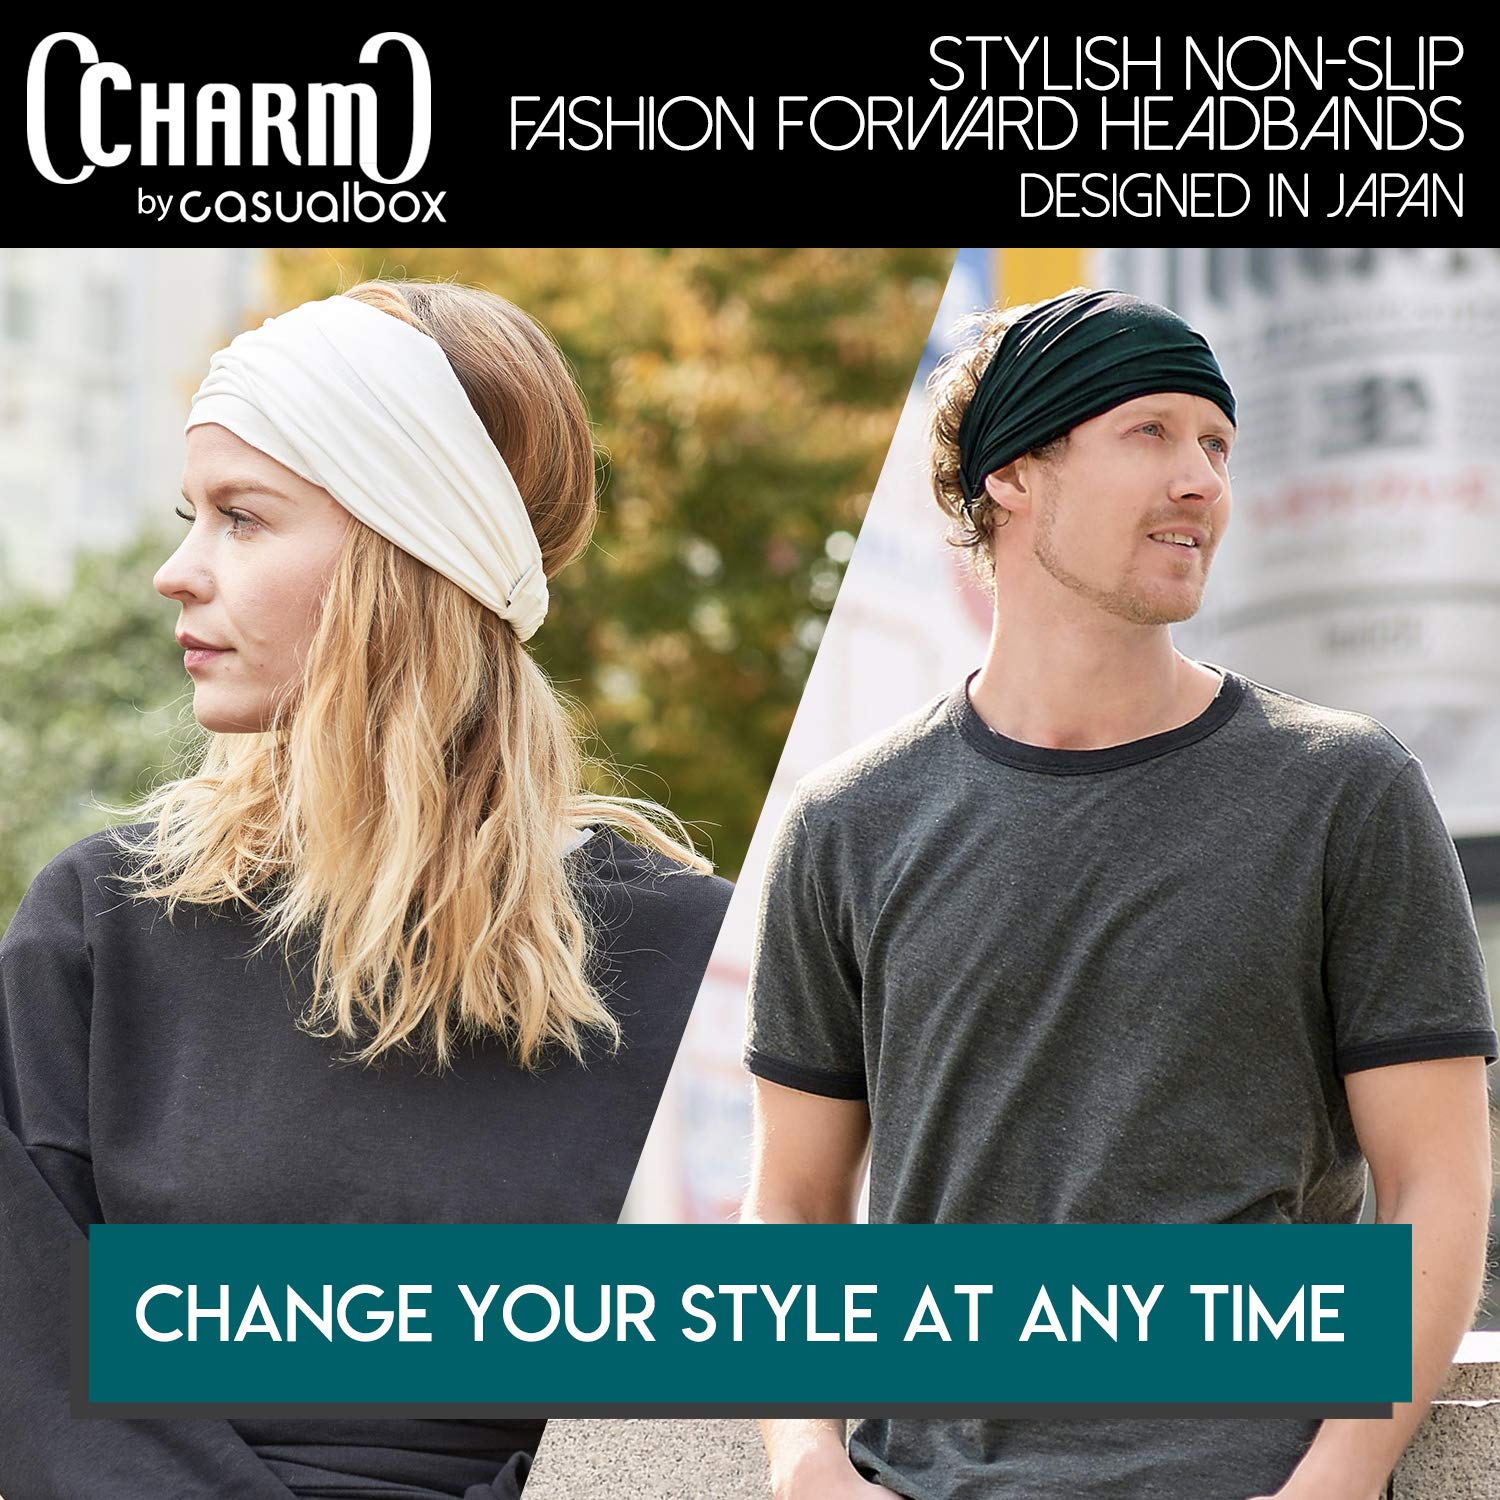 CHARM Black & Navy 2-Pack Japanese Bandana Headbands for Men and Women – Comfortable Head Bands with Elastic Secure Snug Fit Ideal Runners Fitness Sports Football Tennis Stylish Lightweight M by CCHARM (Image #7)